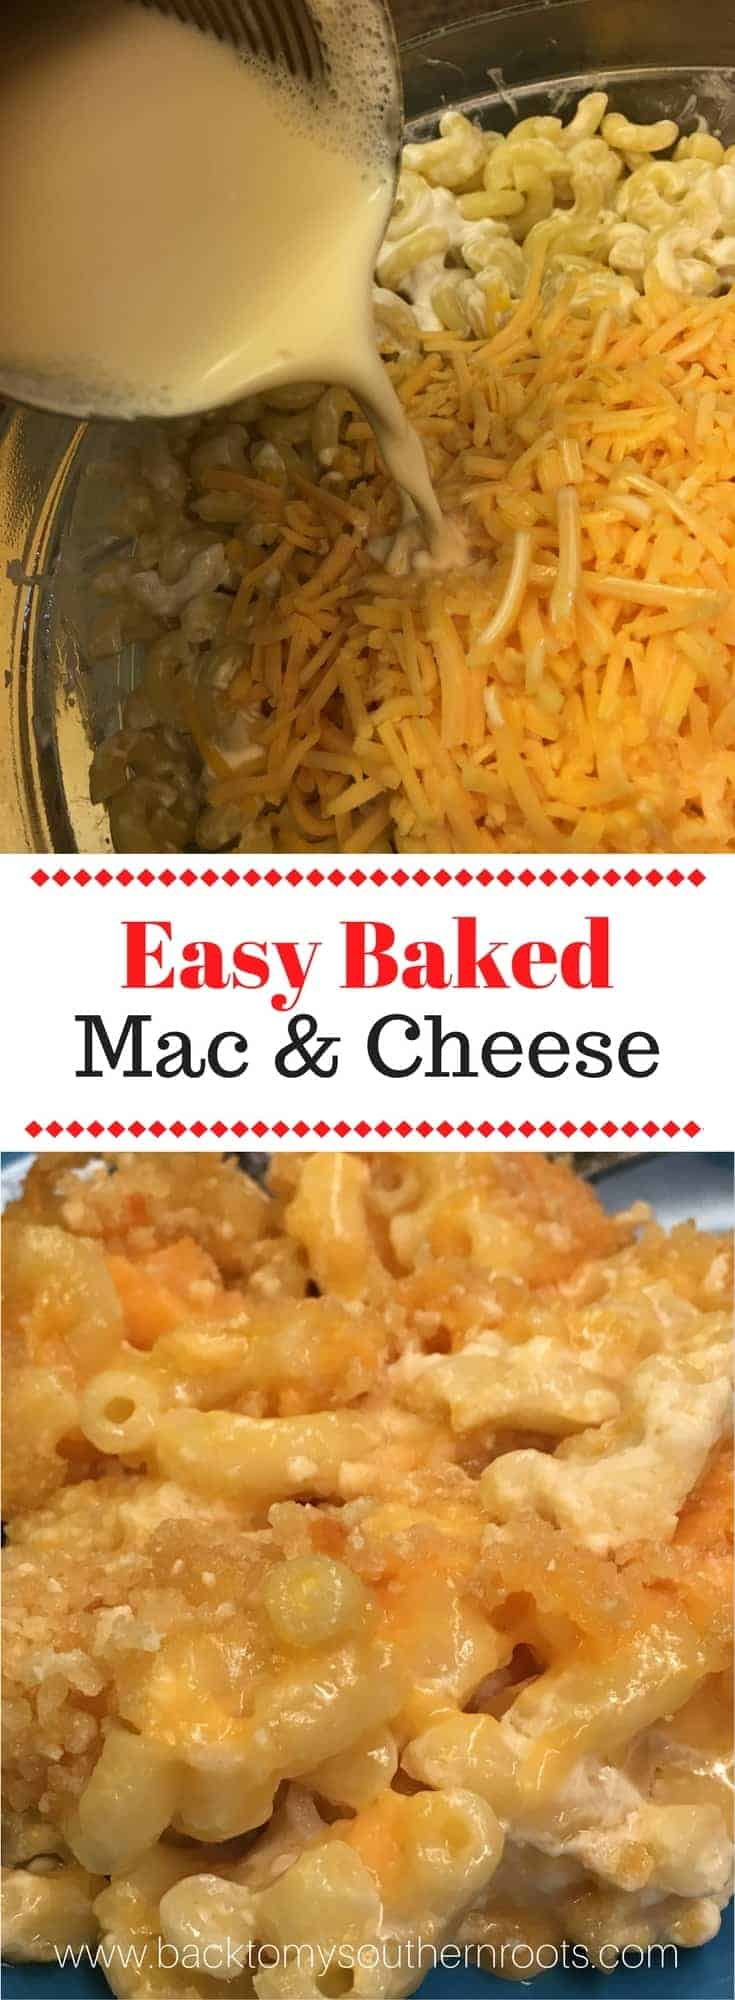 Easy Homemade Baked Macaroni and Cheese is an easy and cheap supper to fix. It's a cheesy, creamy, and filling meal that will fill everyone up and have leftovers!